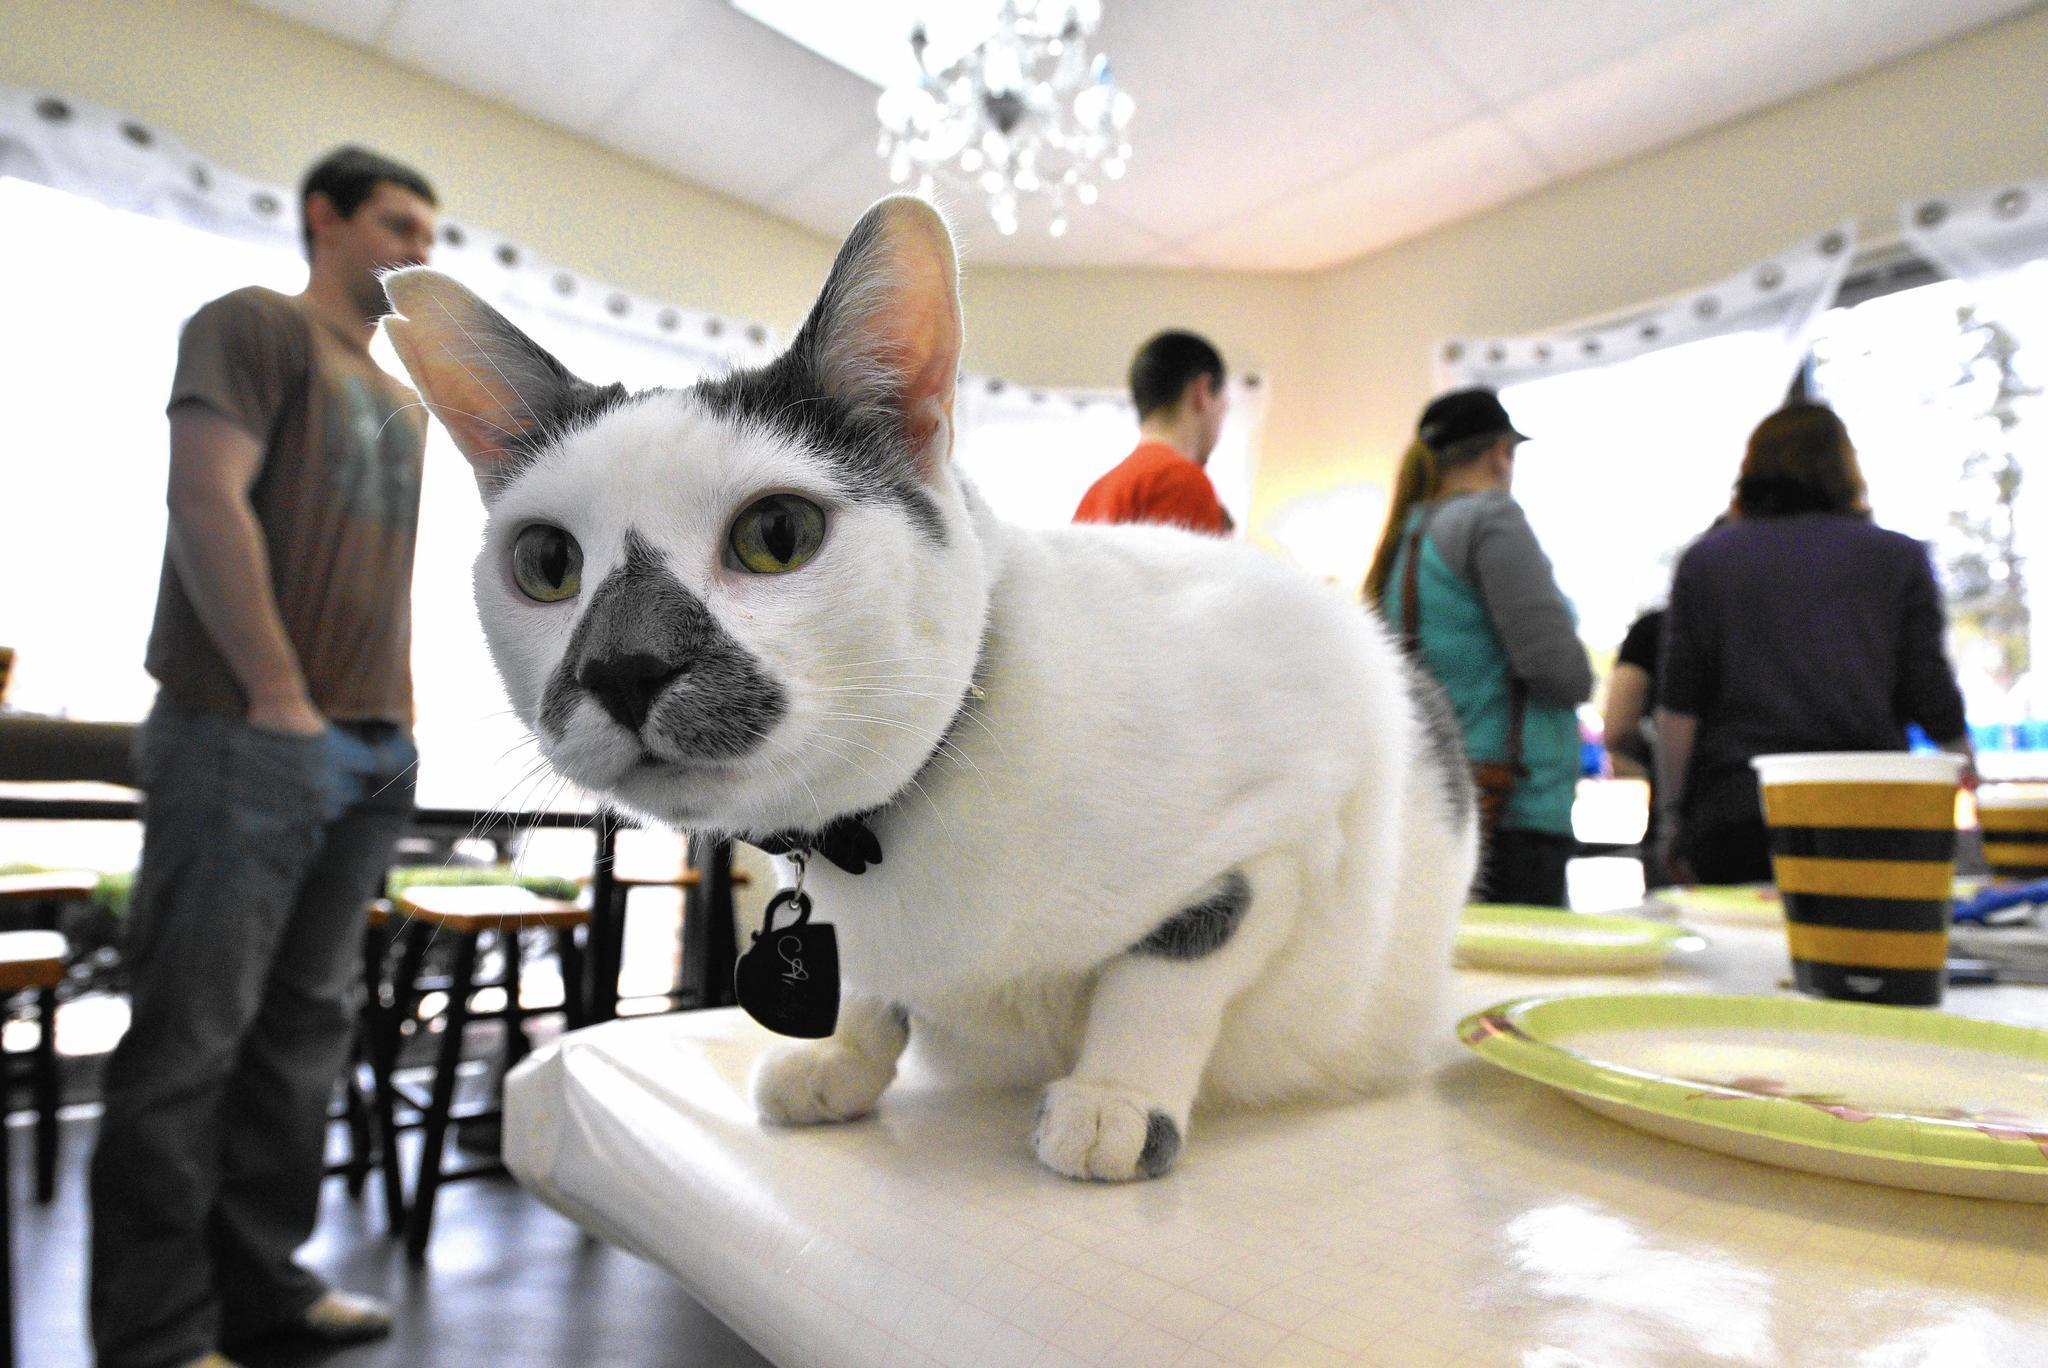 annapolis cat cafe hopes to find purrfect home for its